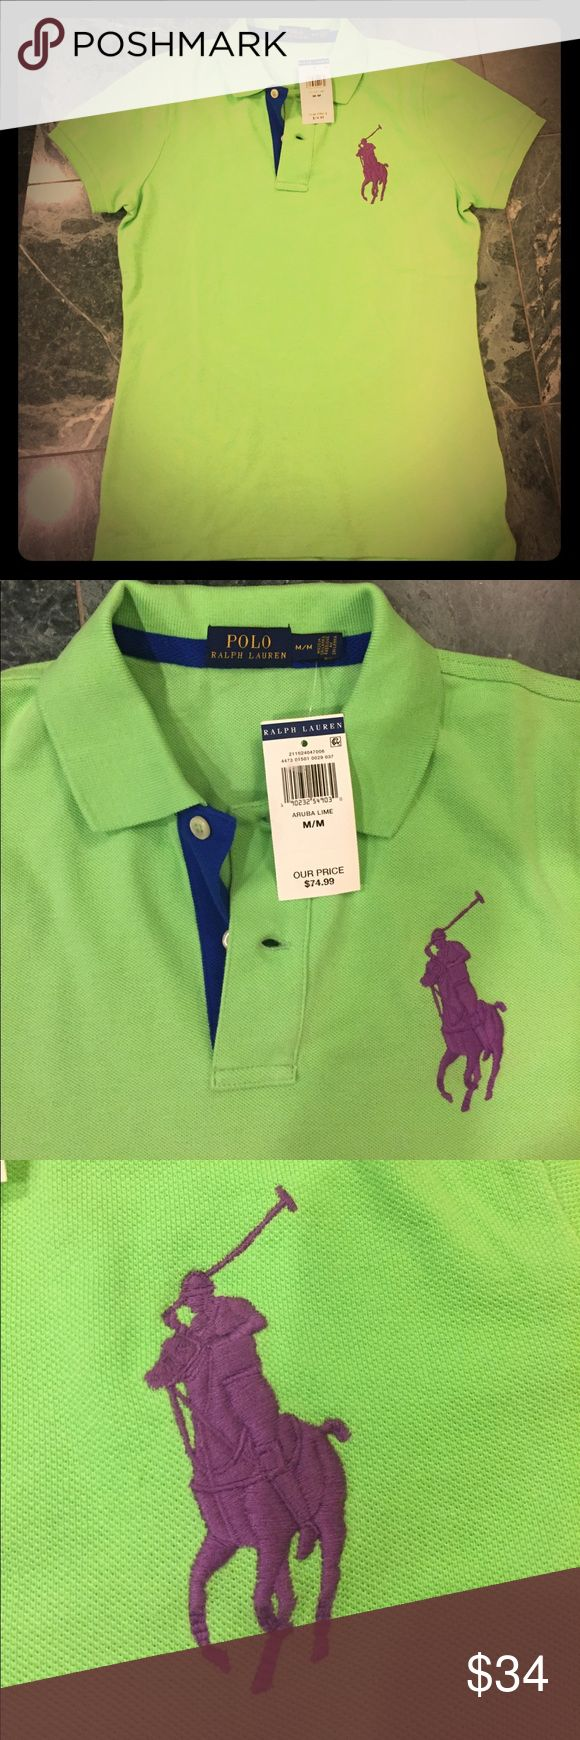 Ralph Lauren Lime Polo shirt size M Brand new Polo shirt, lime color with the purple polo logo. It is a fitted shirt so it almost seems like it runs a bit small. Lauren Ralph Lauren Tops